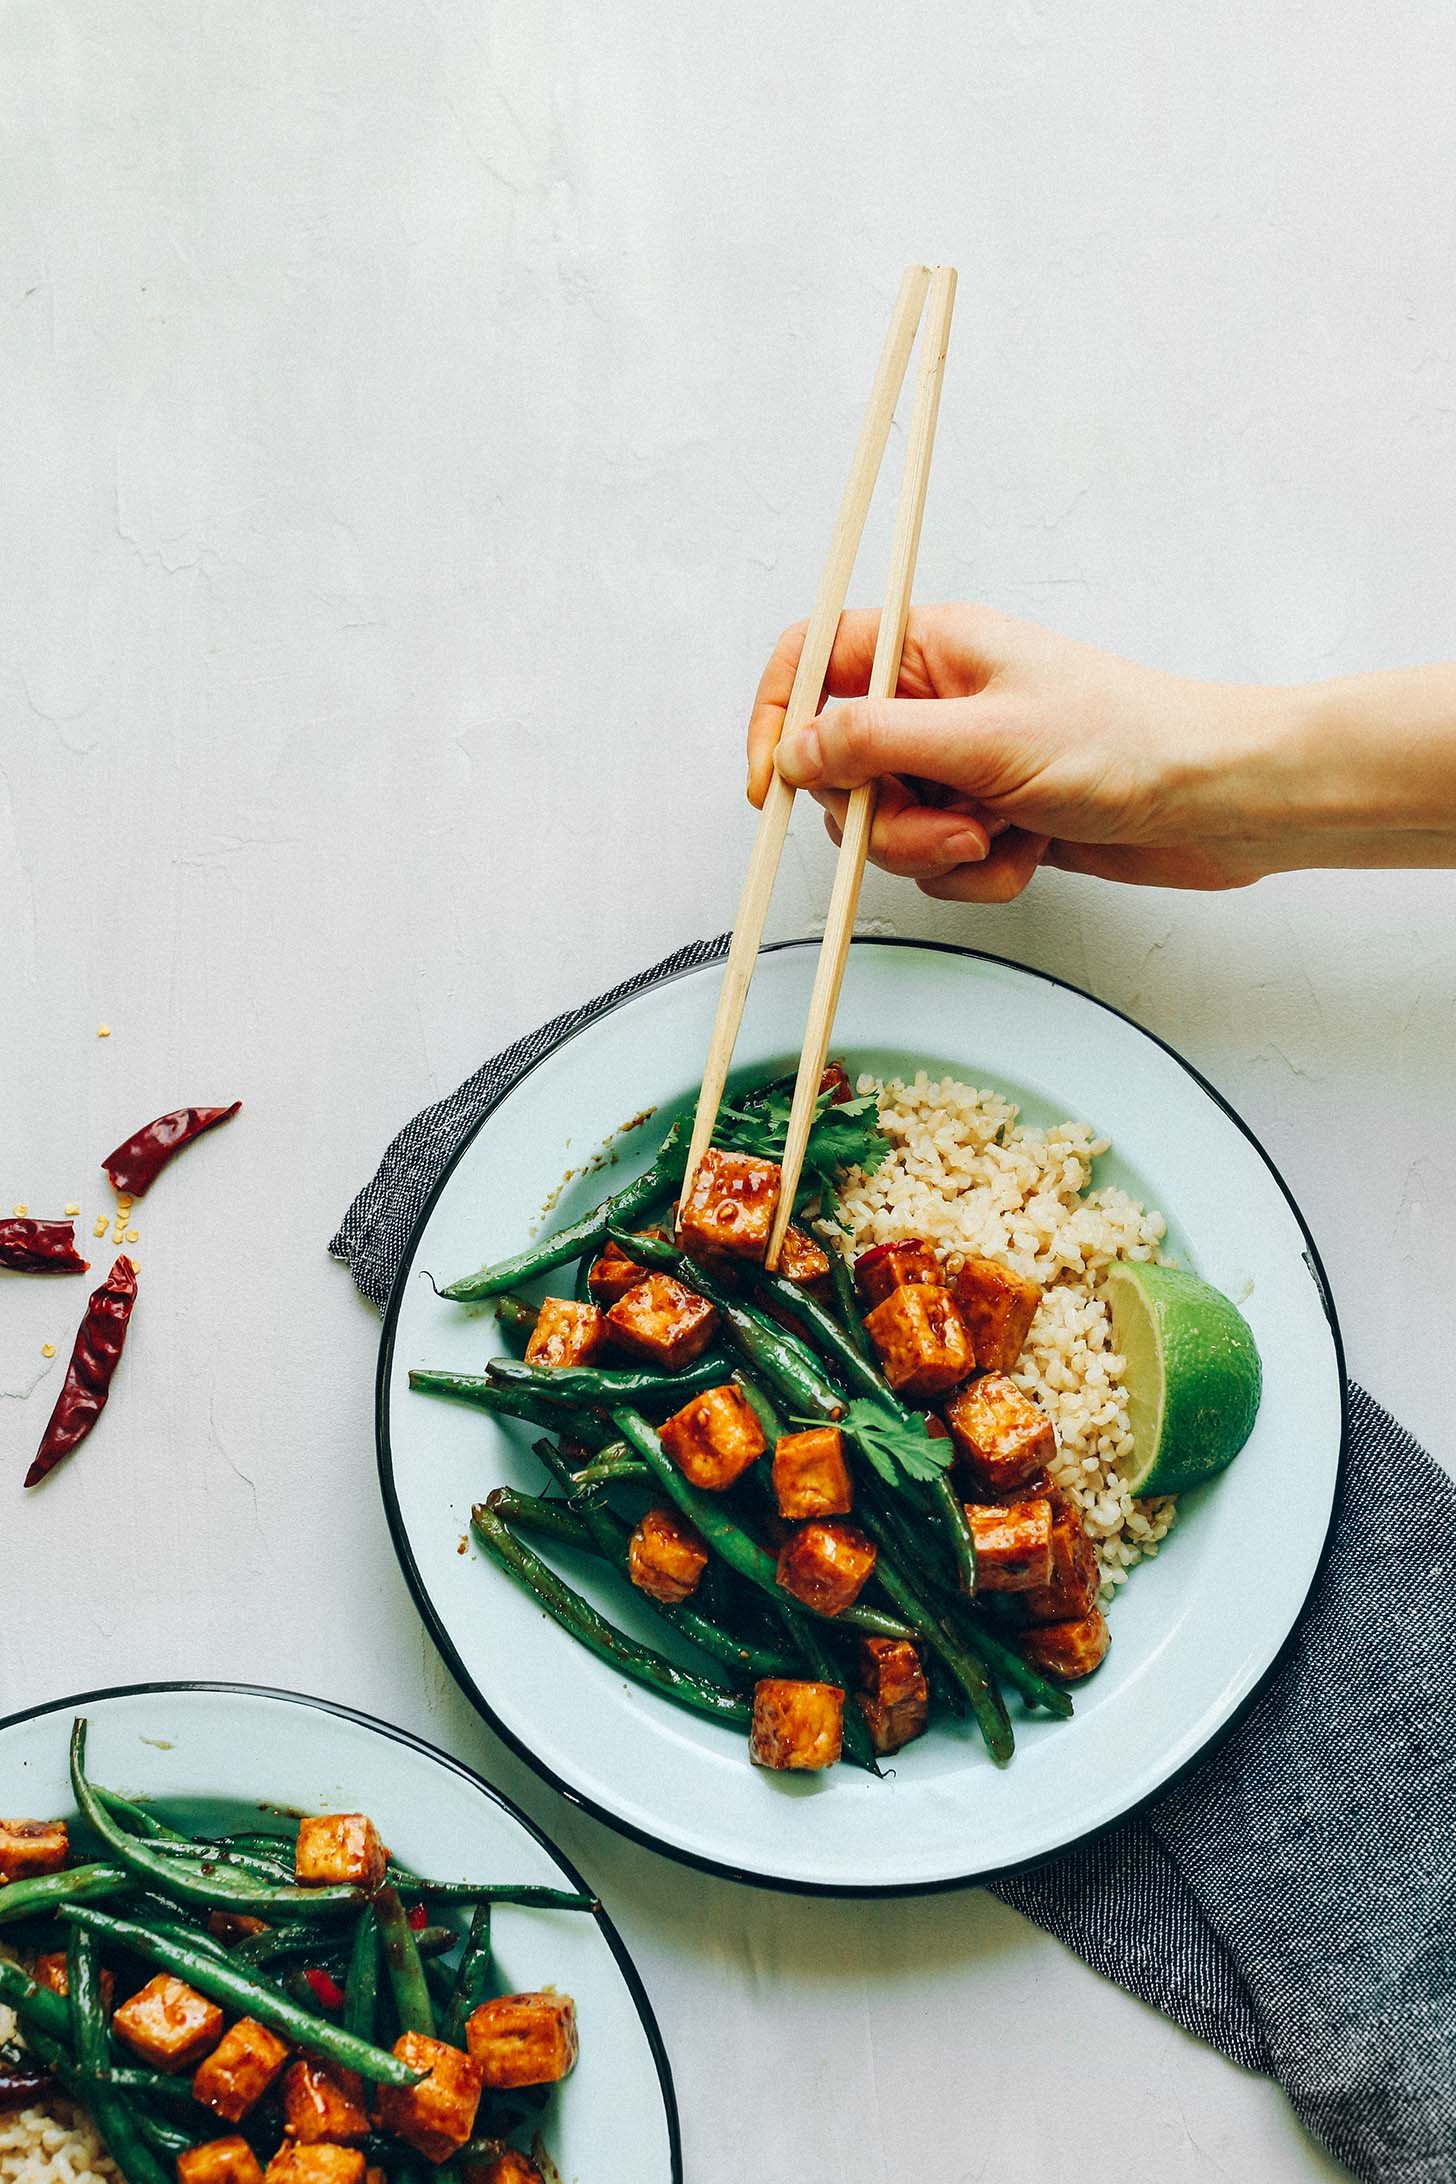 Using chopsticks to grab a bite of delicious and healthy Almond Butter Tofu Stir-Fry